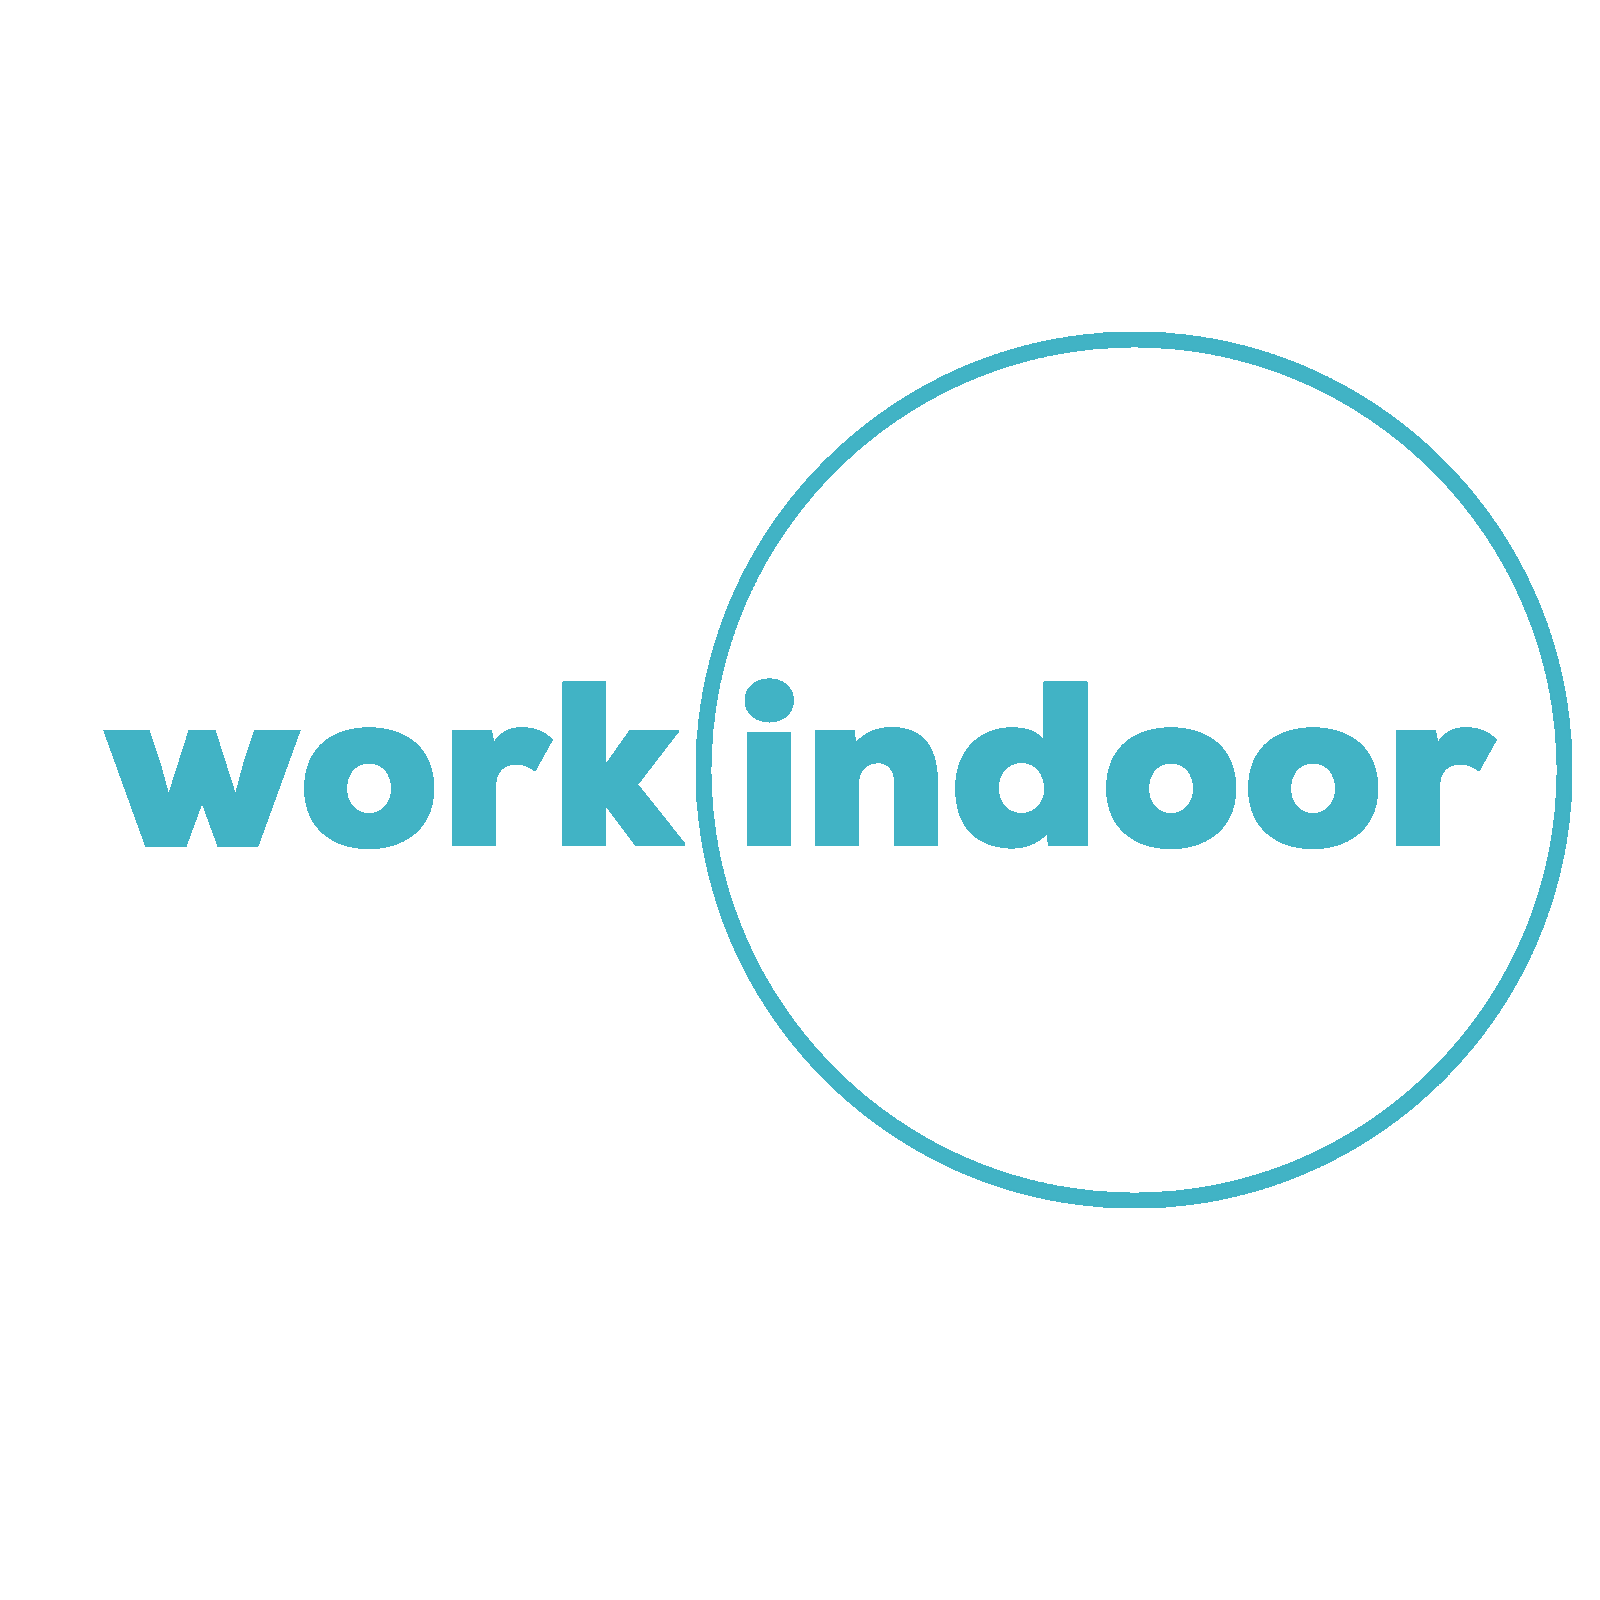 workindoor-press